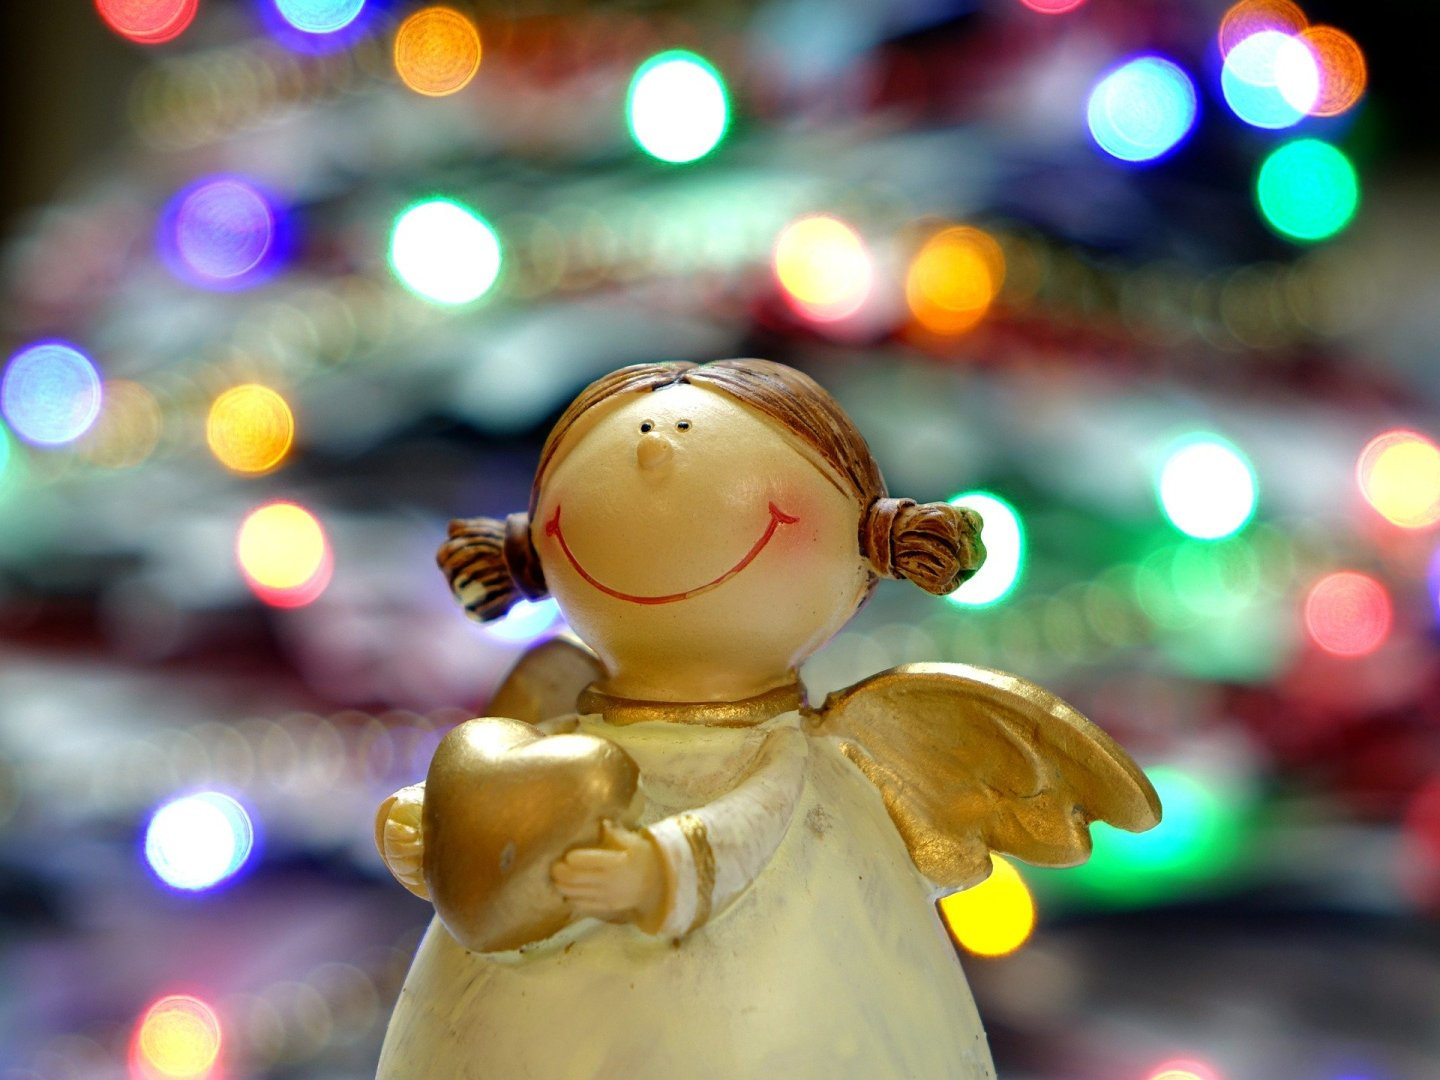 A small cherub angel decoration. The background is a blurred tree with lights.